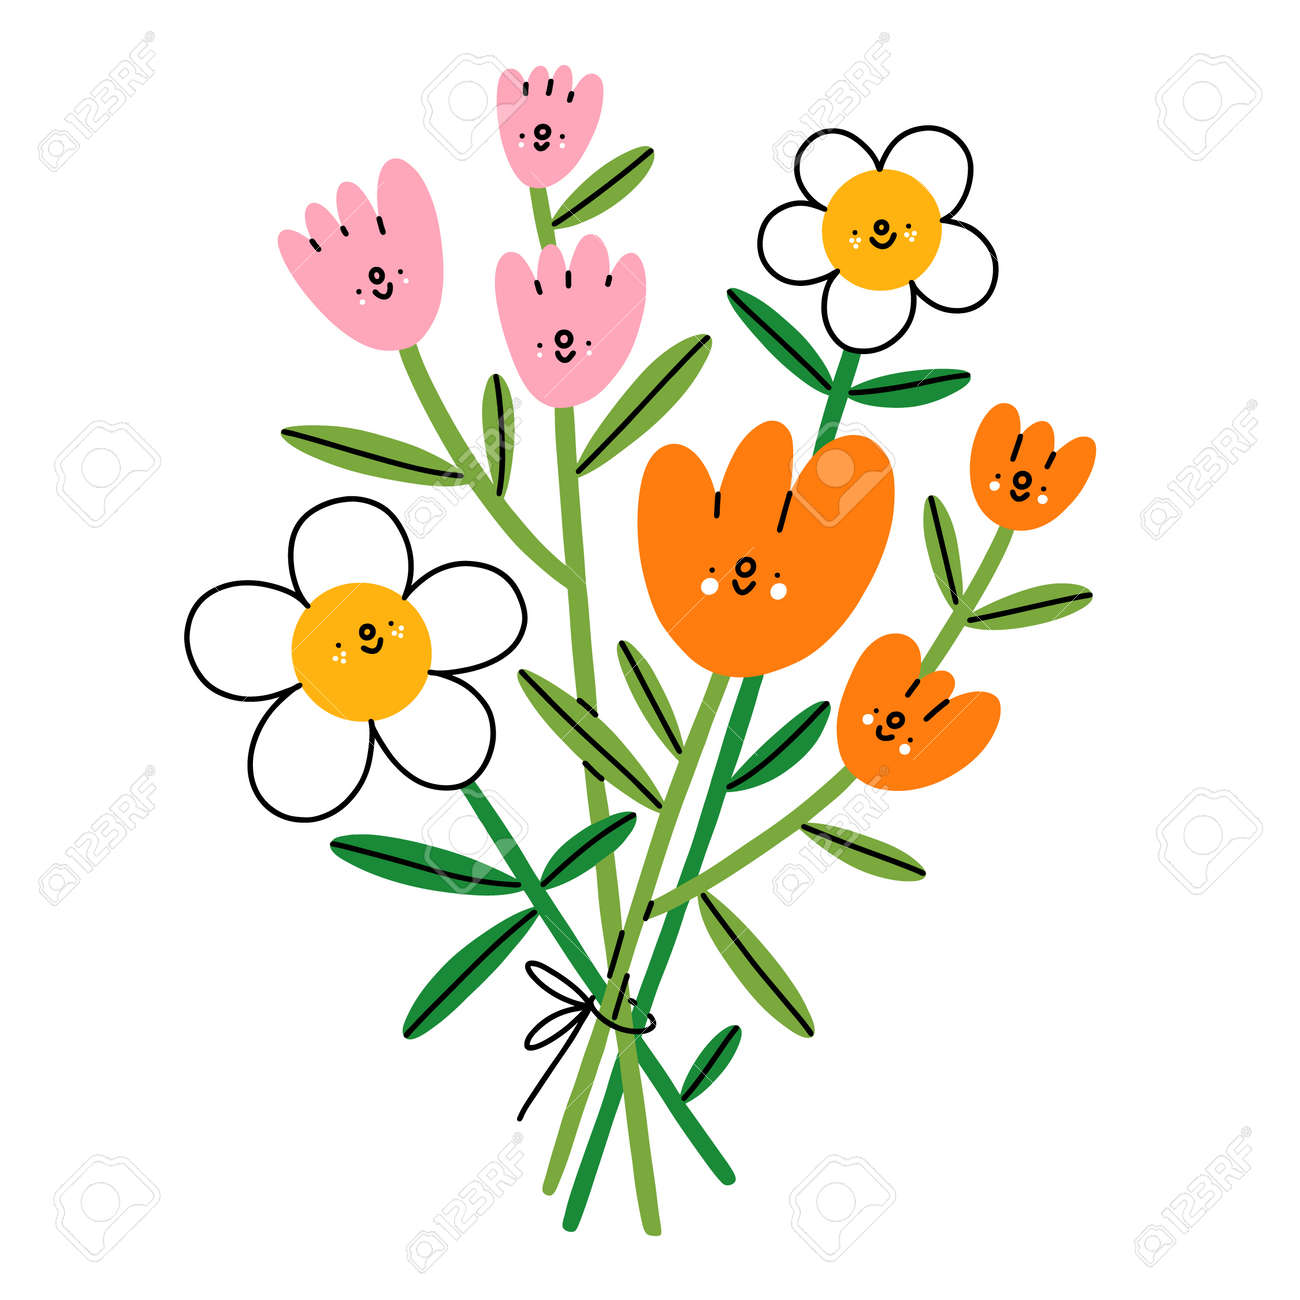 Happy flower characters bouquet, vector illustration with cartoon colorful flowers, isolated on white background - 163336774